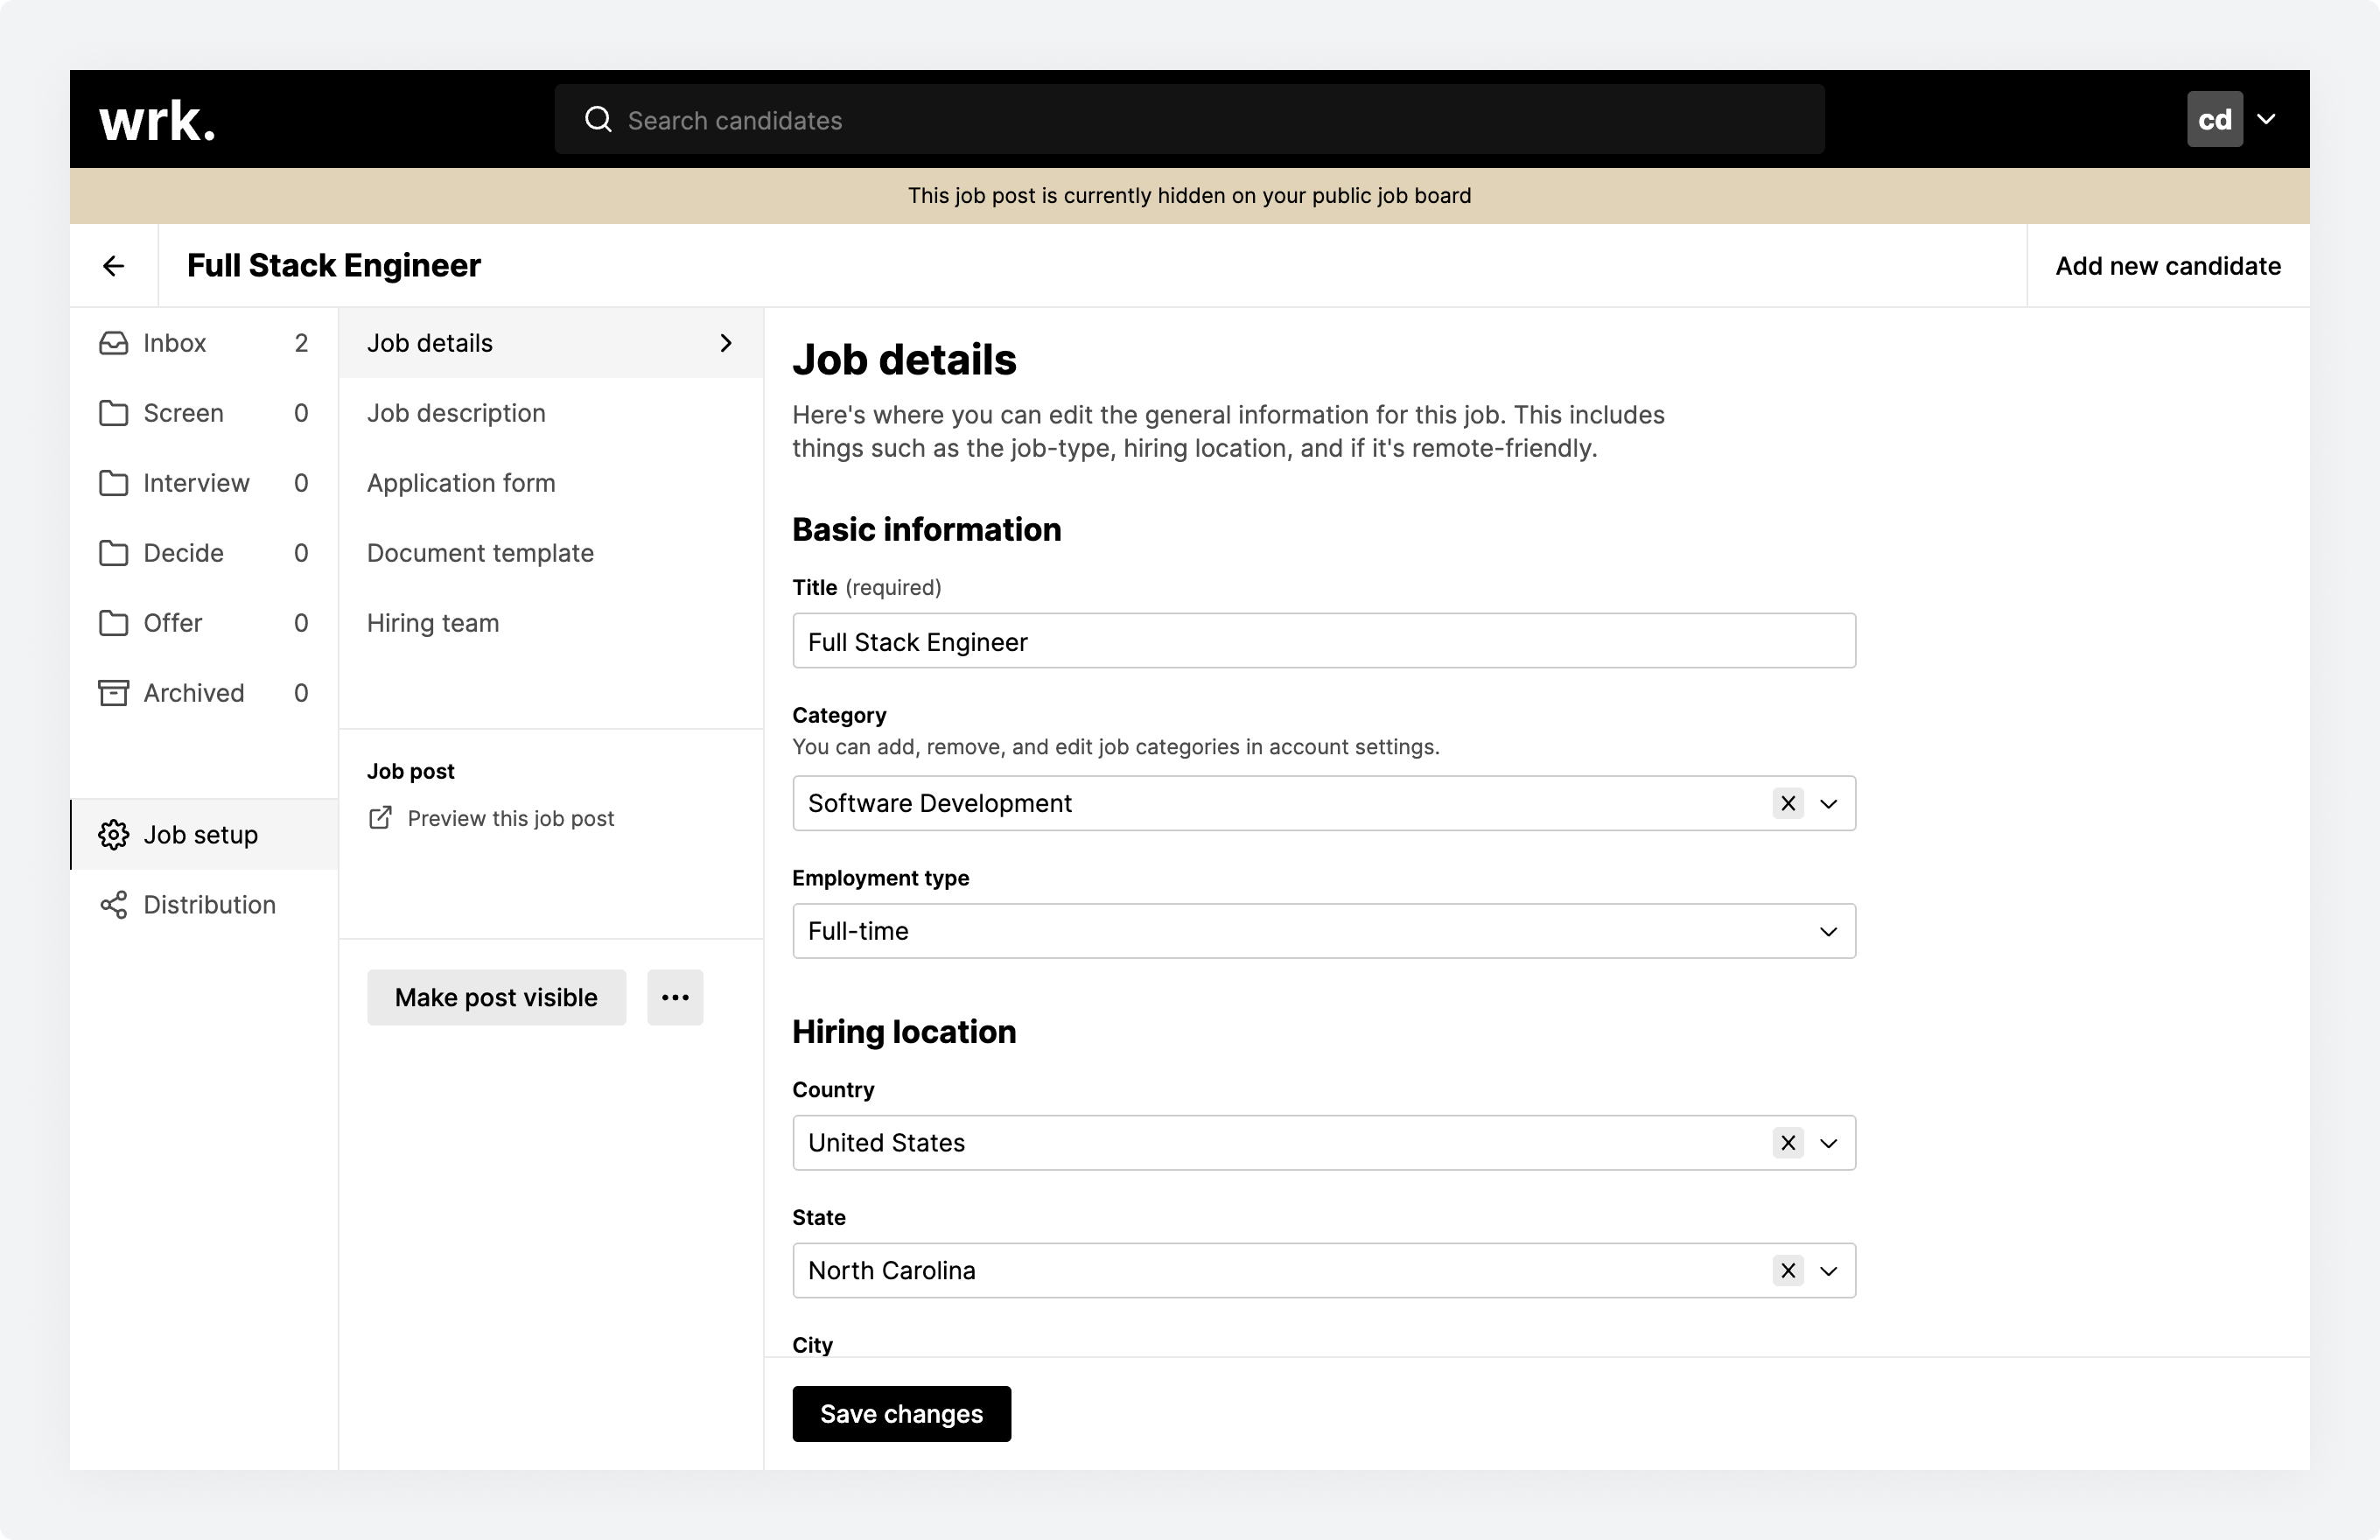 The Job setup screen for a currently hidden job post in Wrk